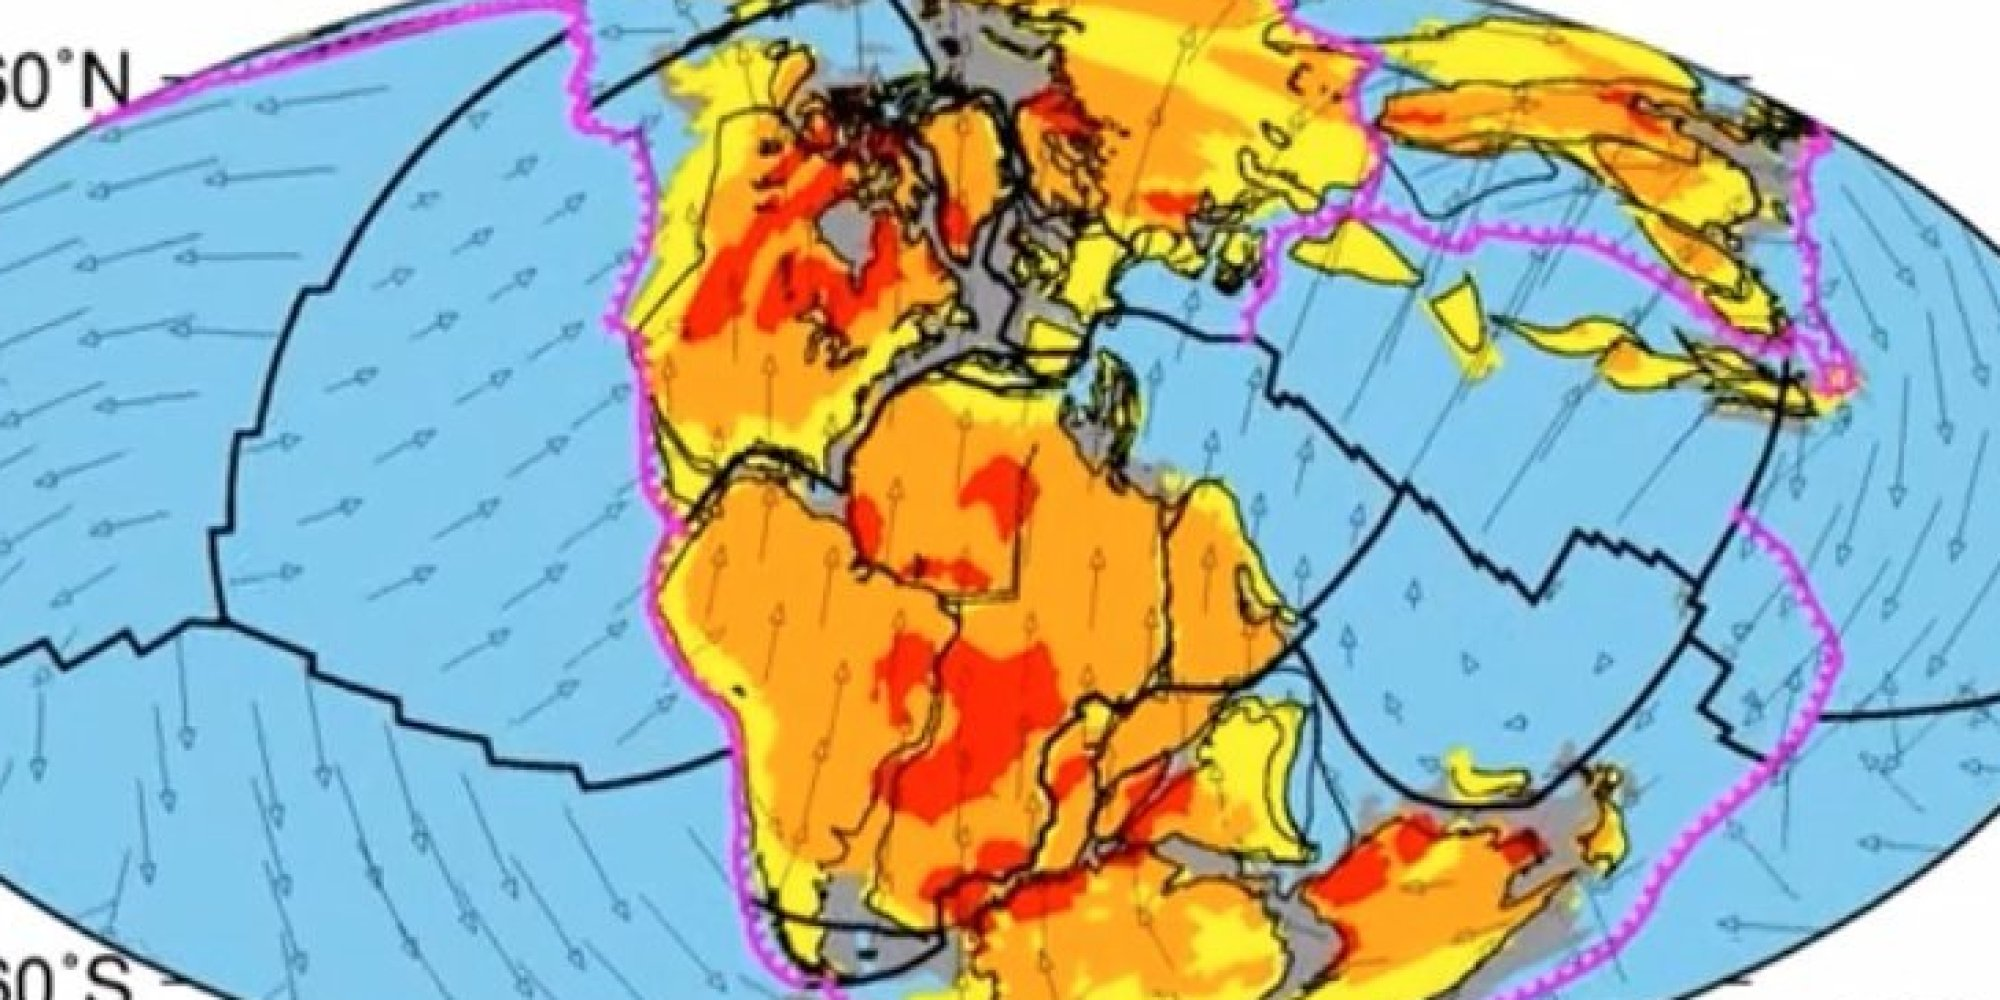 Earth Tectonic Plate Simulation Reveals Our Planet Has